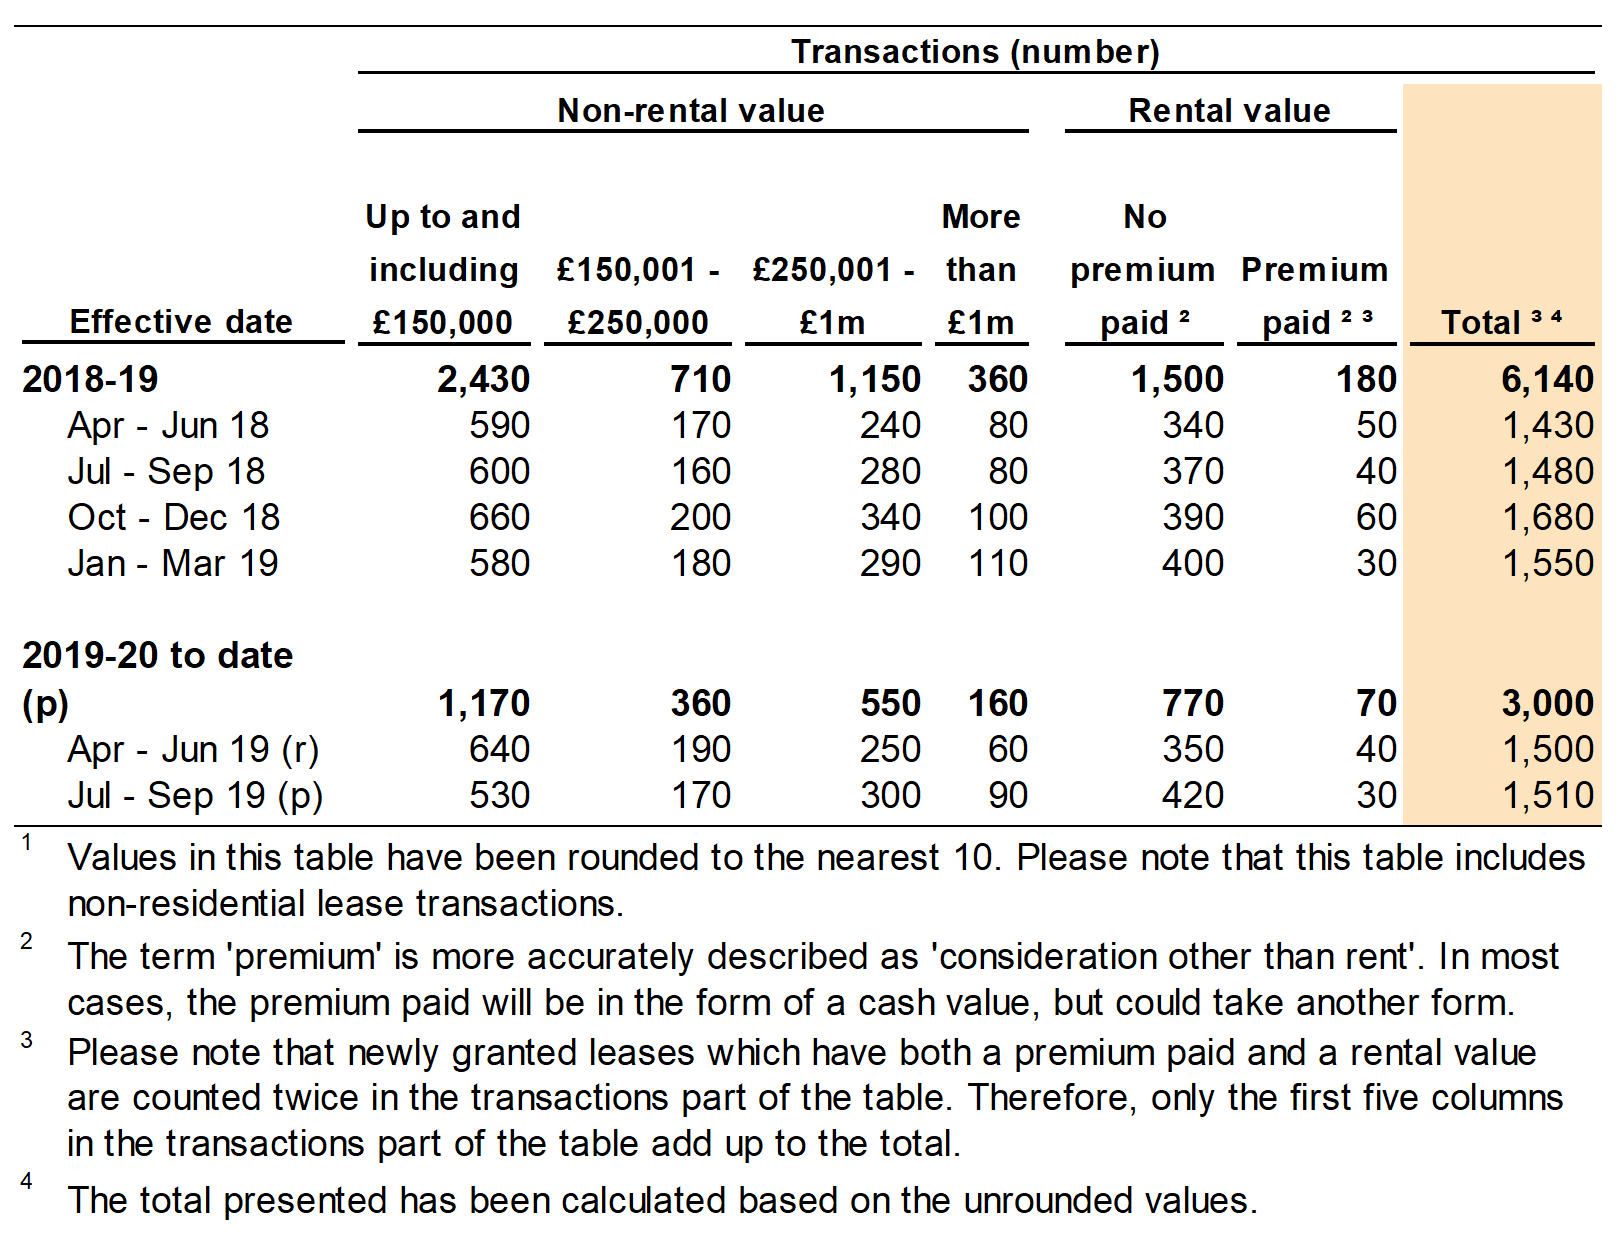 Figure 4.1 shows the number of non-residential transactions by value of the property. Data is shown for the year and quarter in which the transaction was effective.